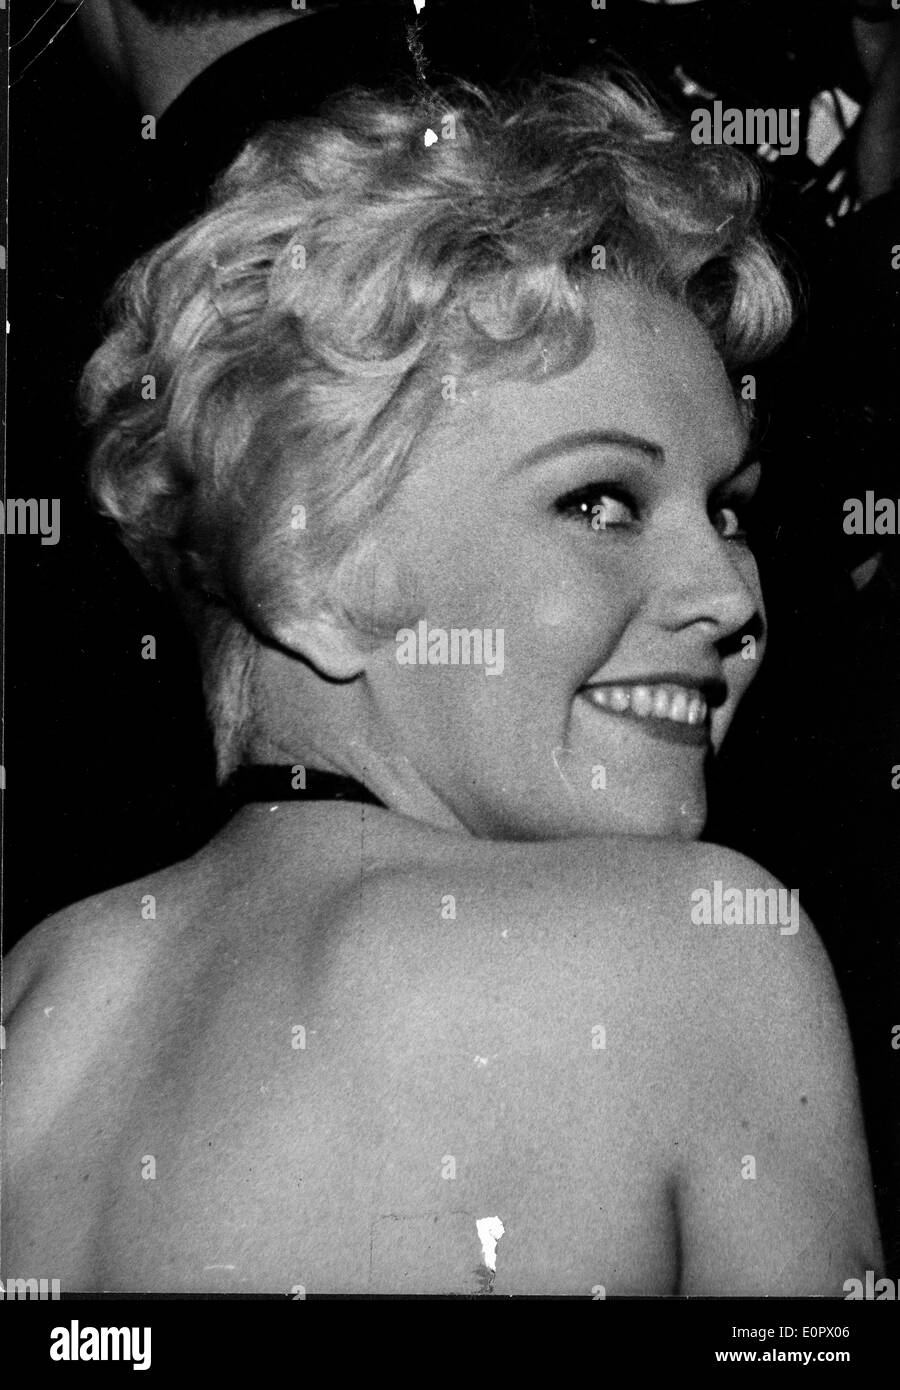 Bare Back Woman Black And White Stock Photos Images Alamy